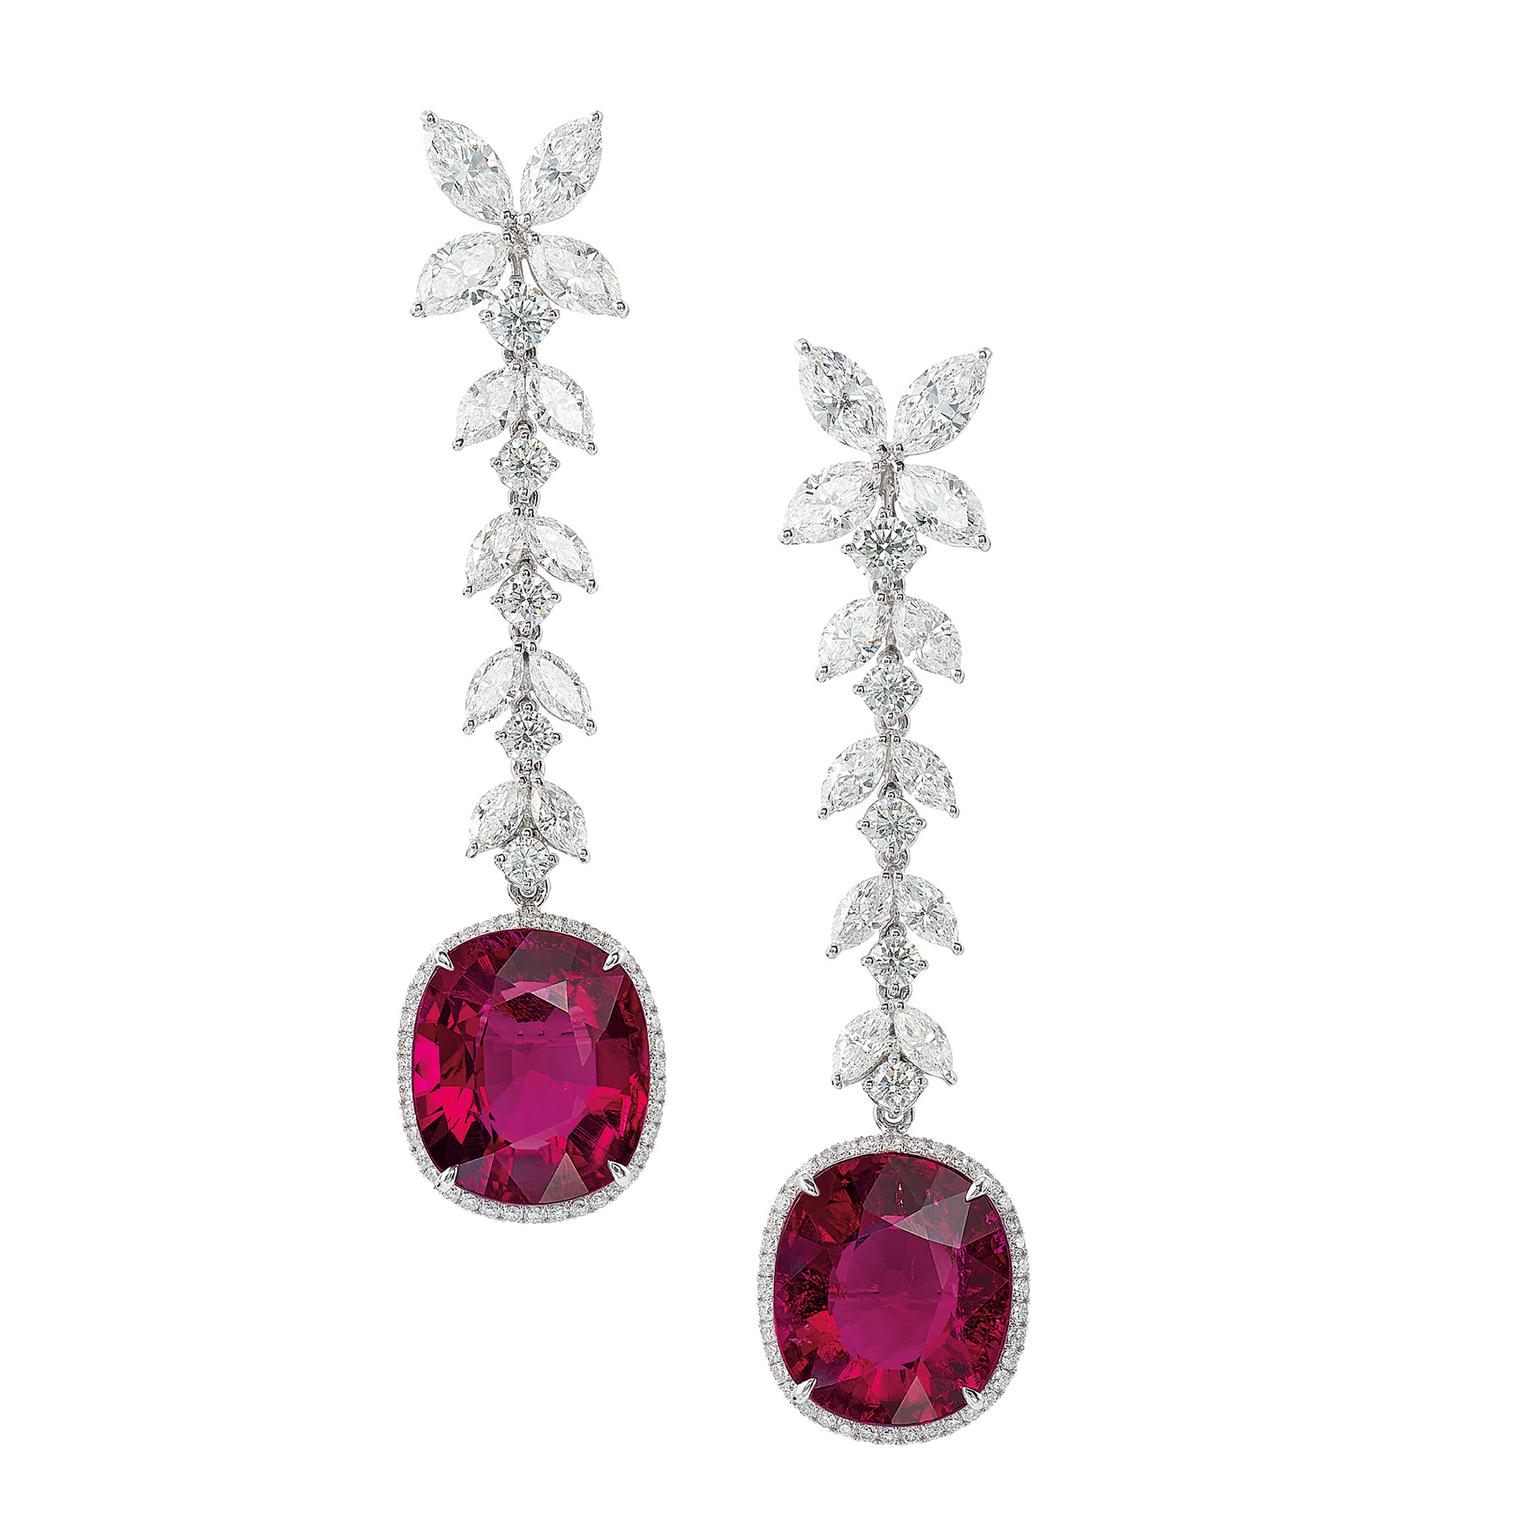 Lot 586 Tourmaline and diamonds earrings for Phillips auction